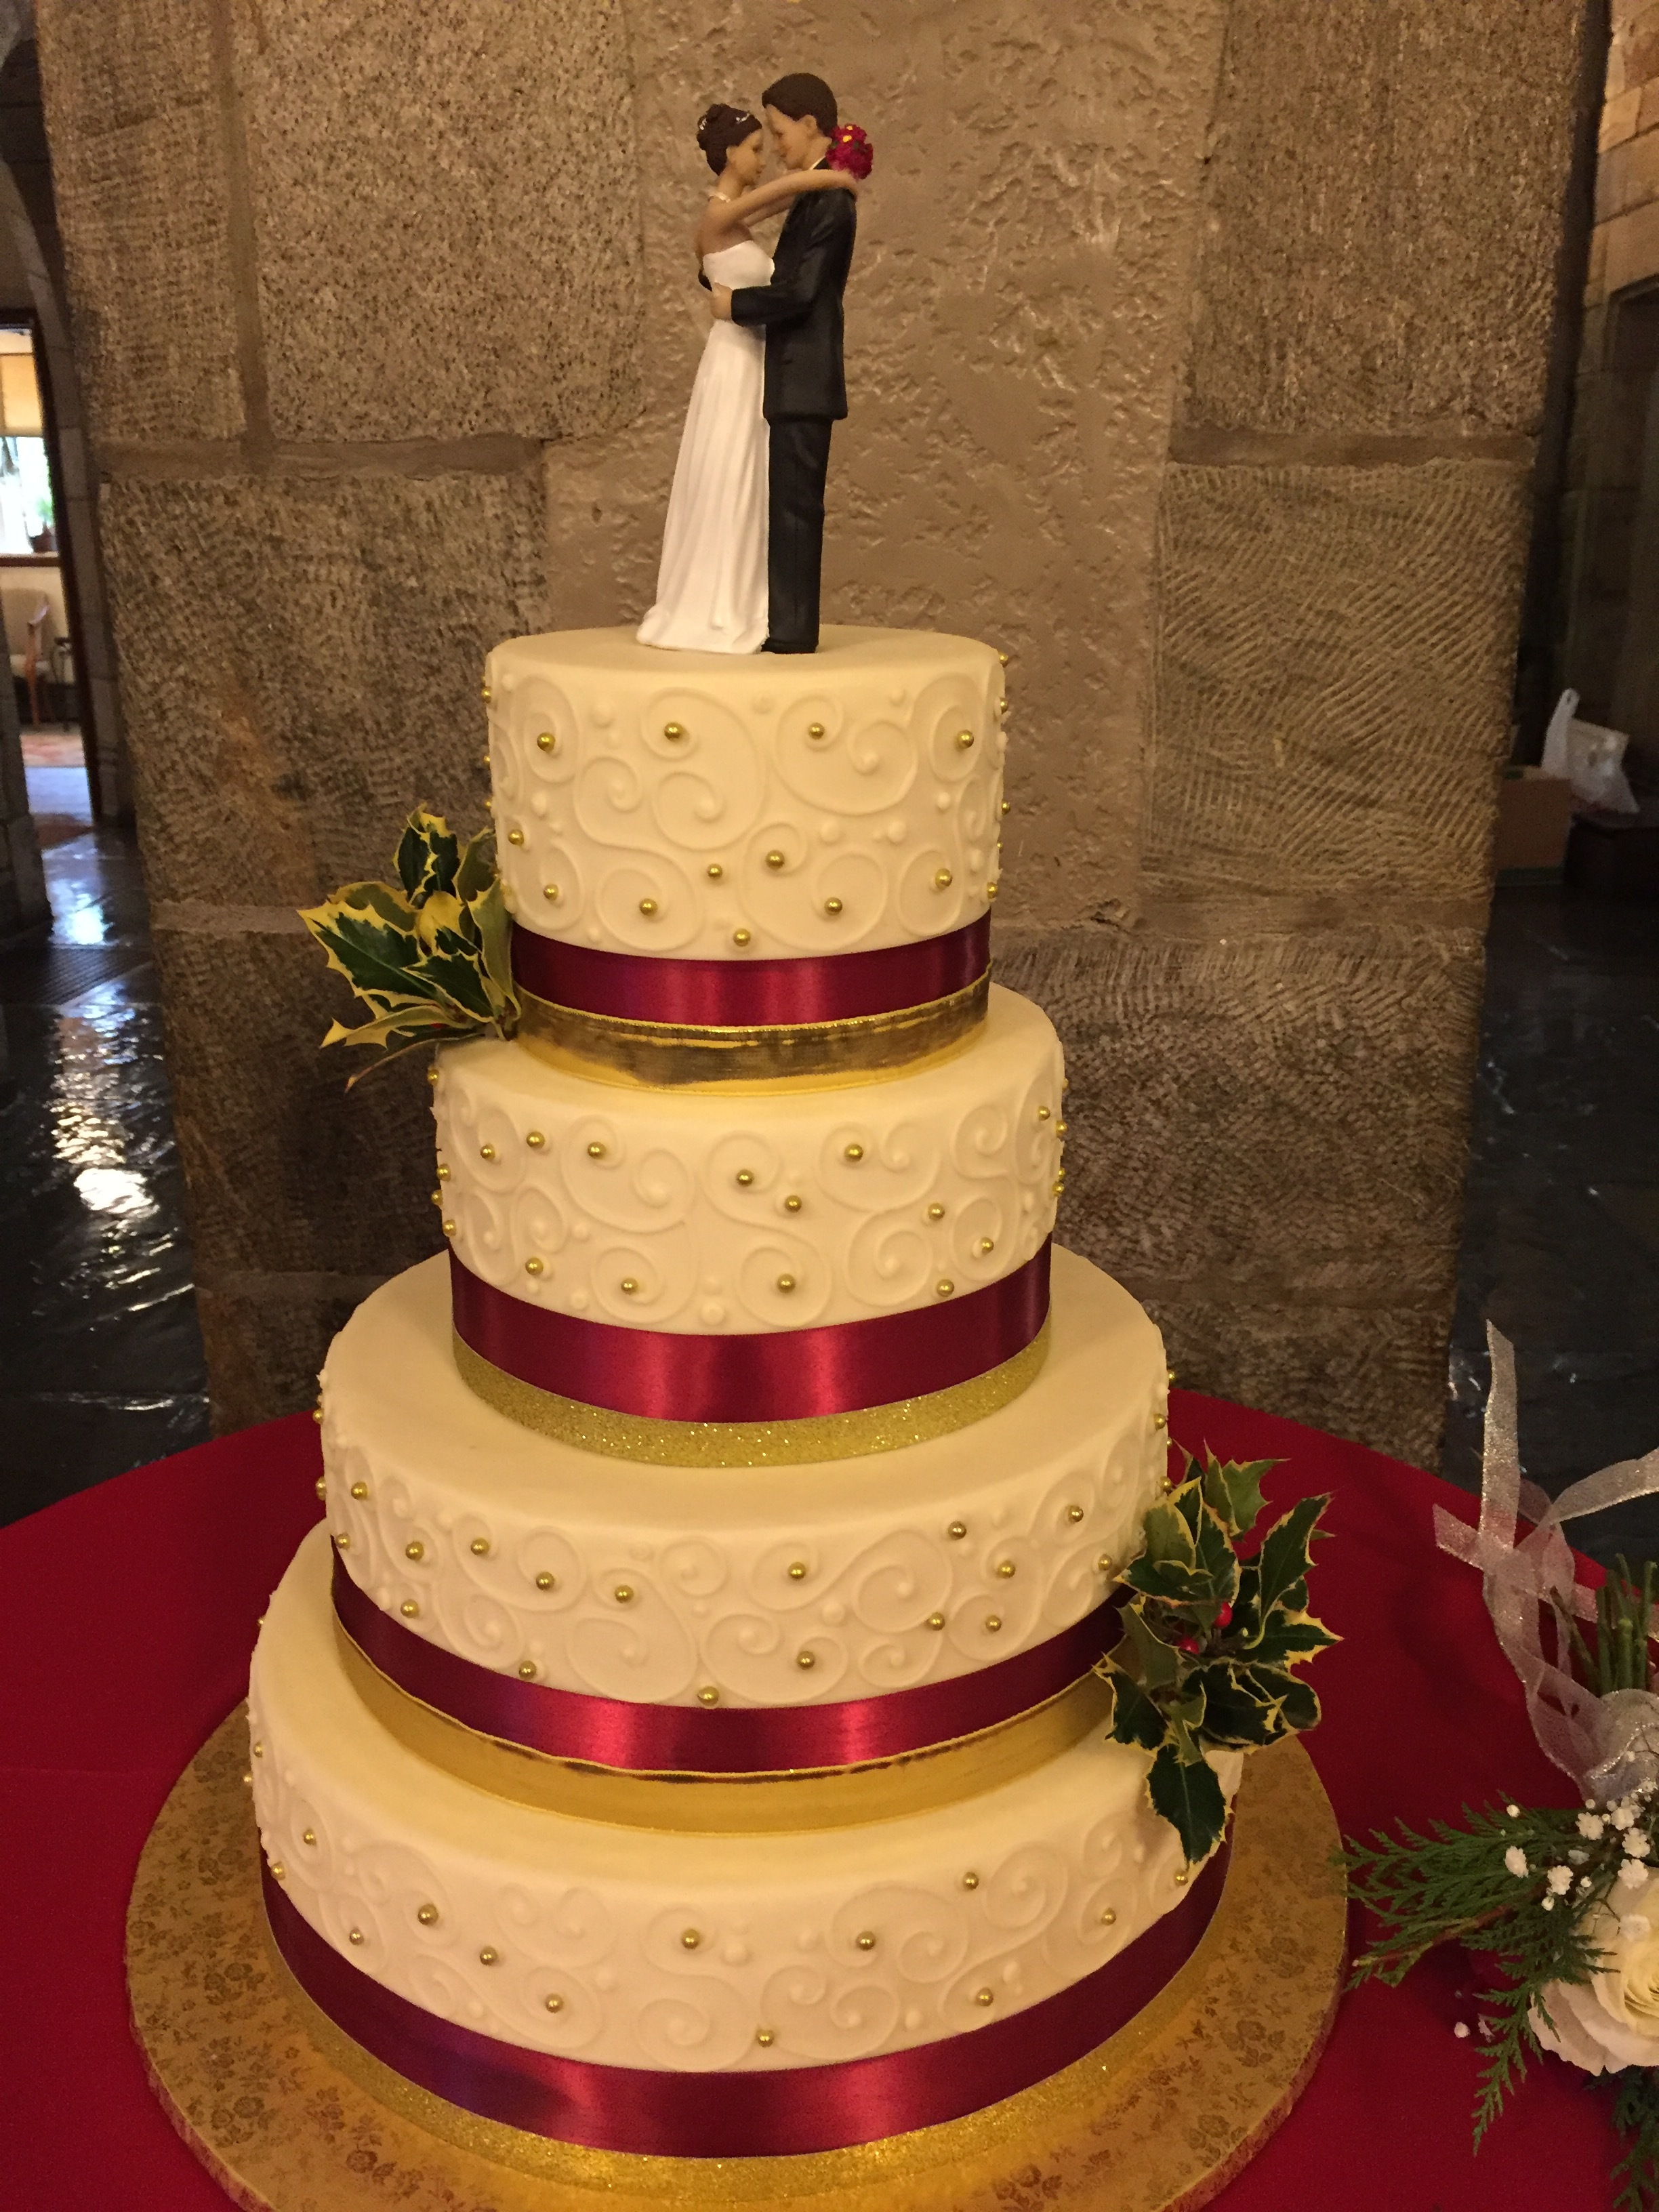 Holly and Berries December Wedding Cake